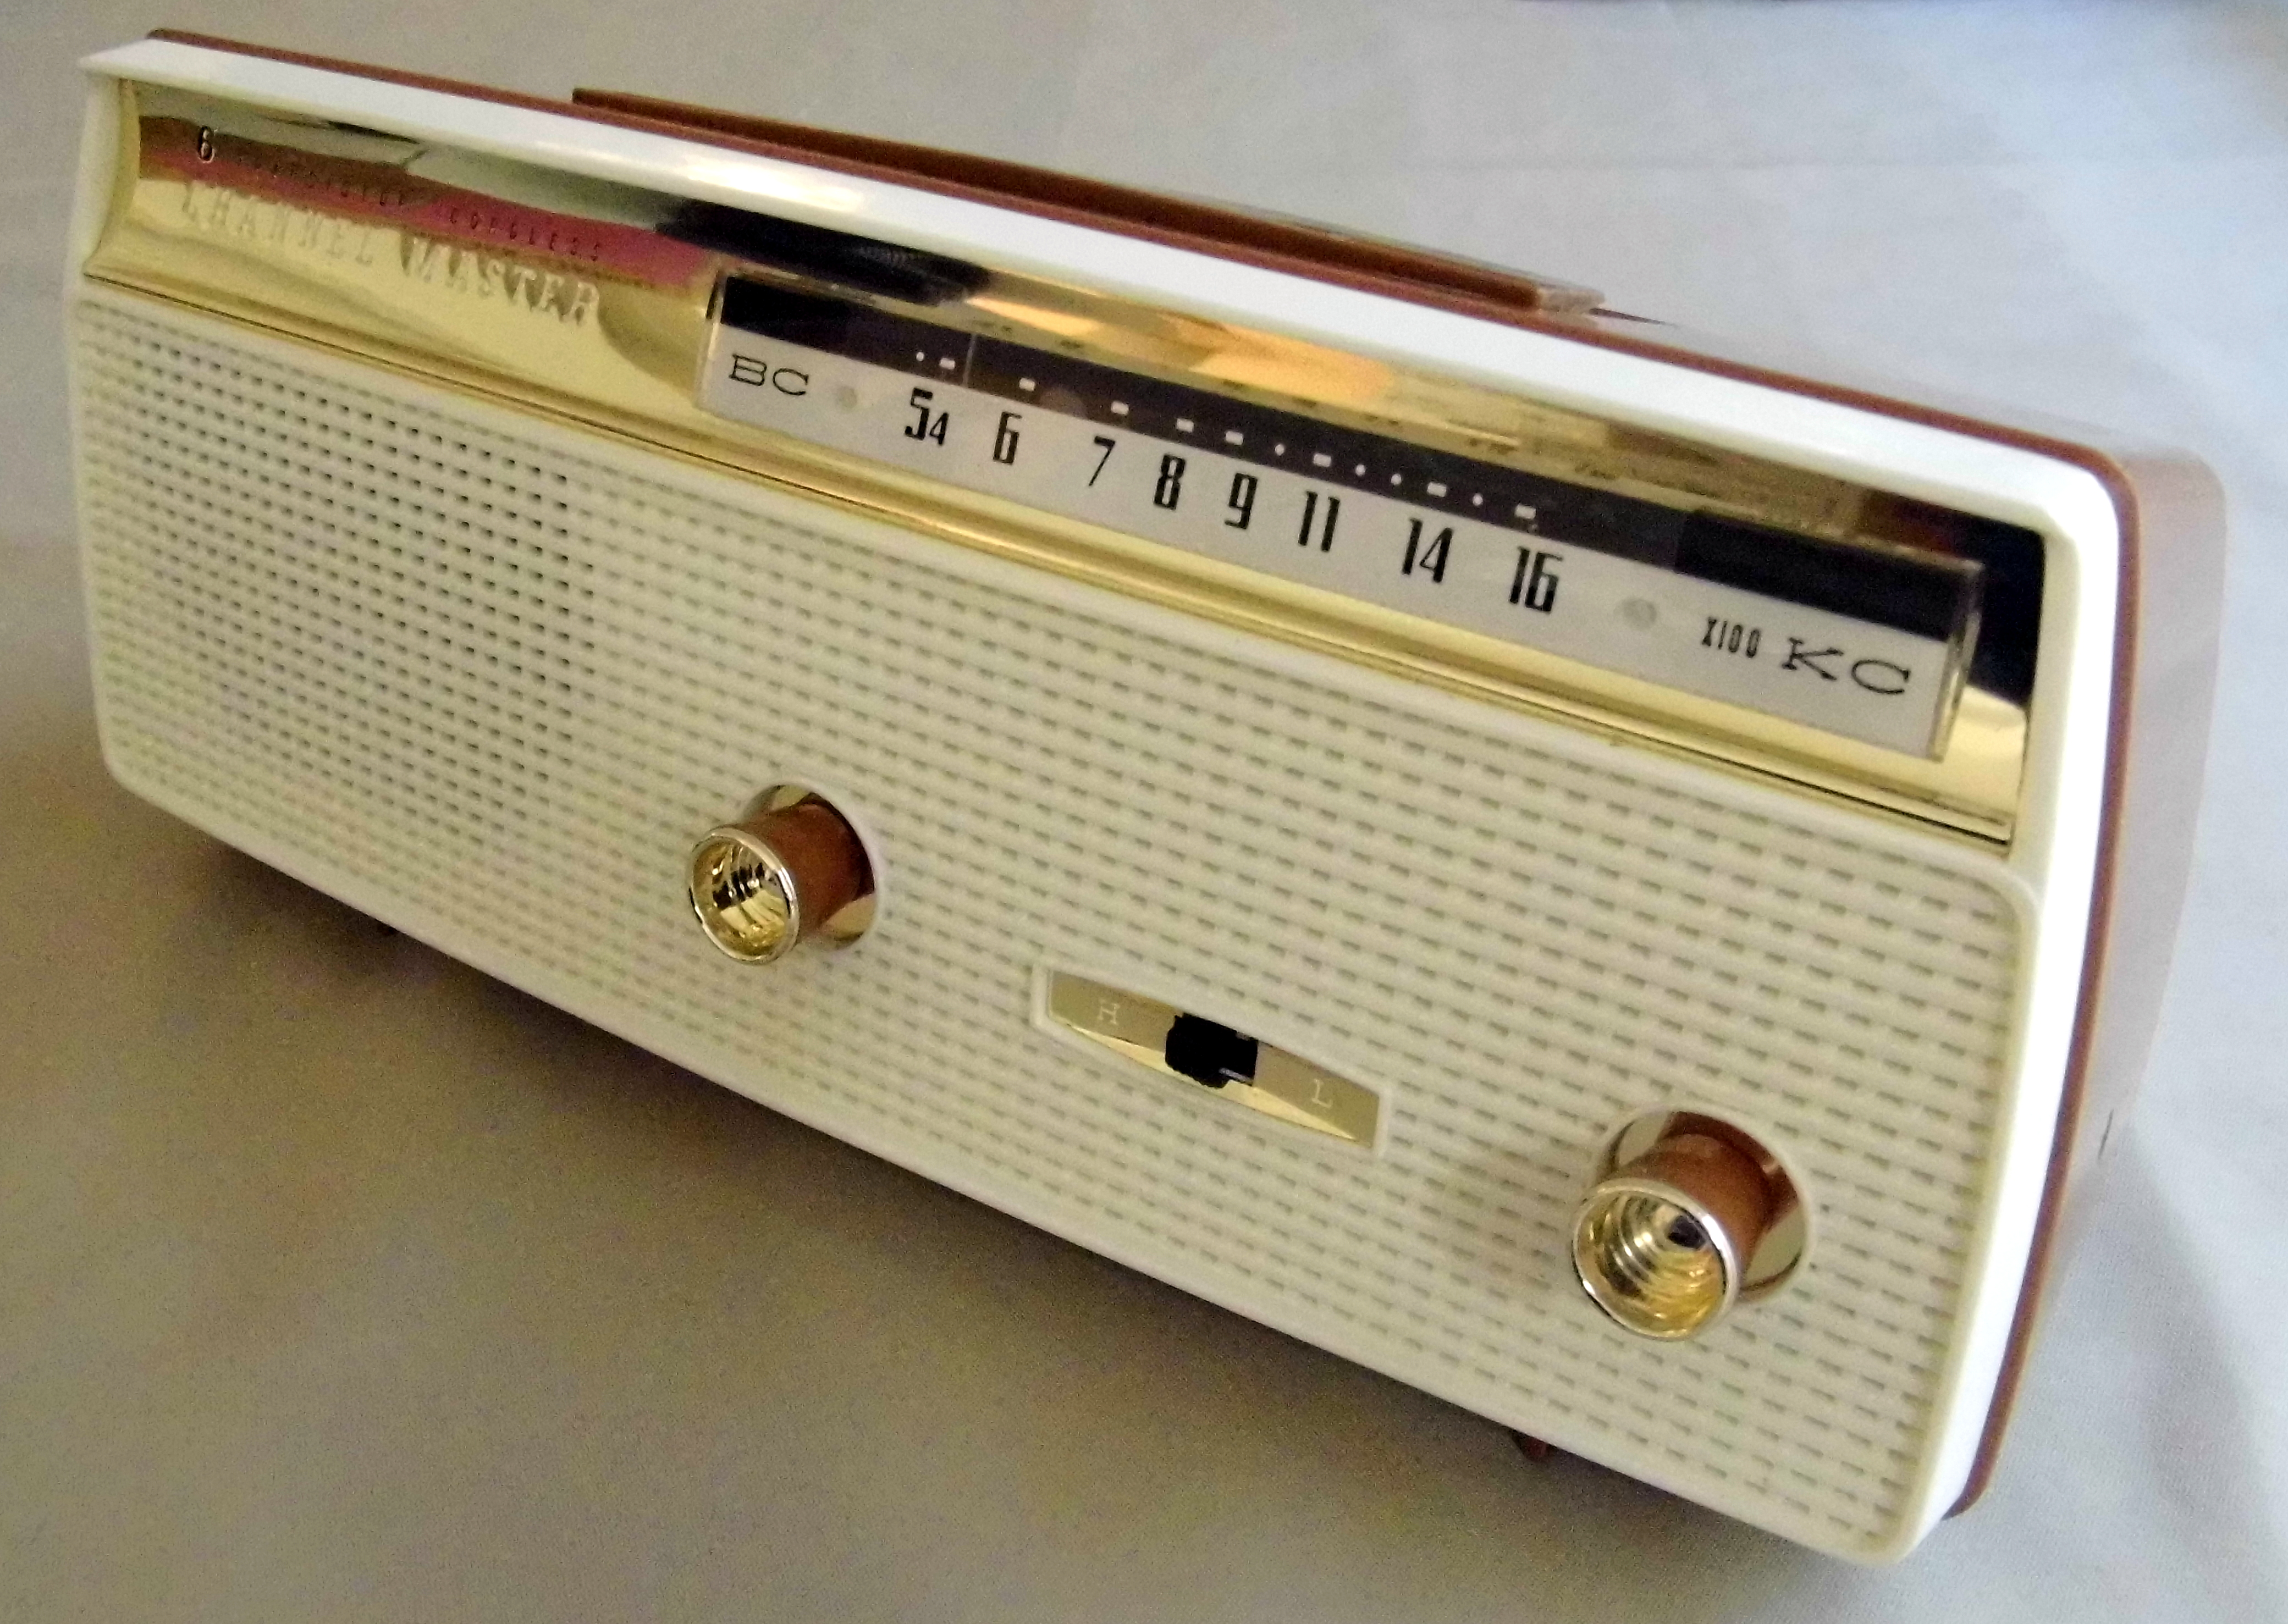 Watch additionally Antenna  lifier Circuits likewise Shop furthermore Stock Photography Transistor Radio Production Ussr Falcon Image34900762 furthermore Indexa. on portable transistor radio